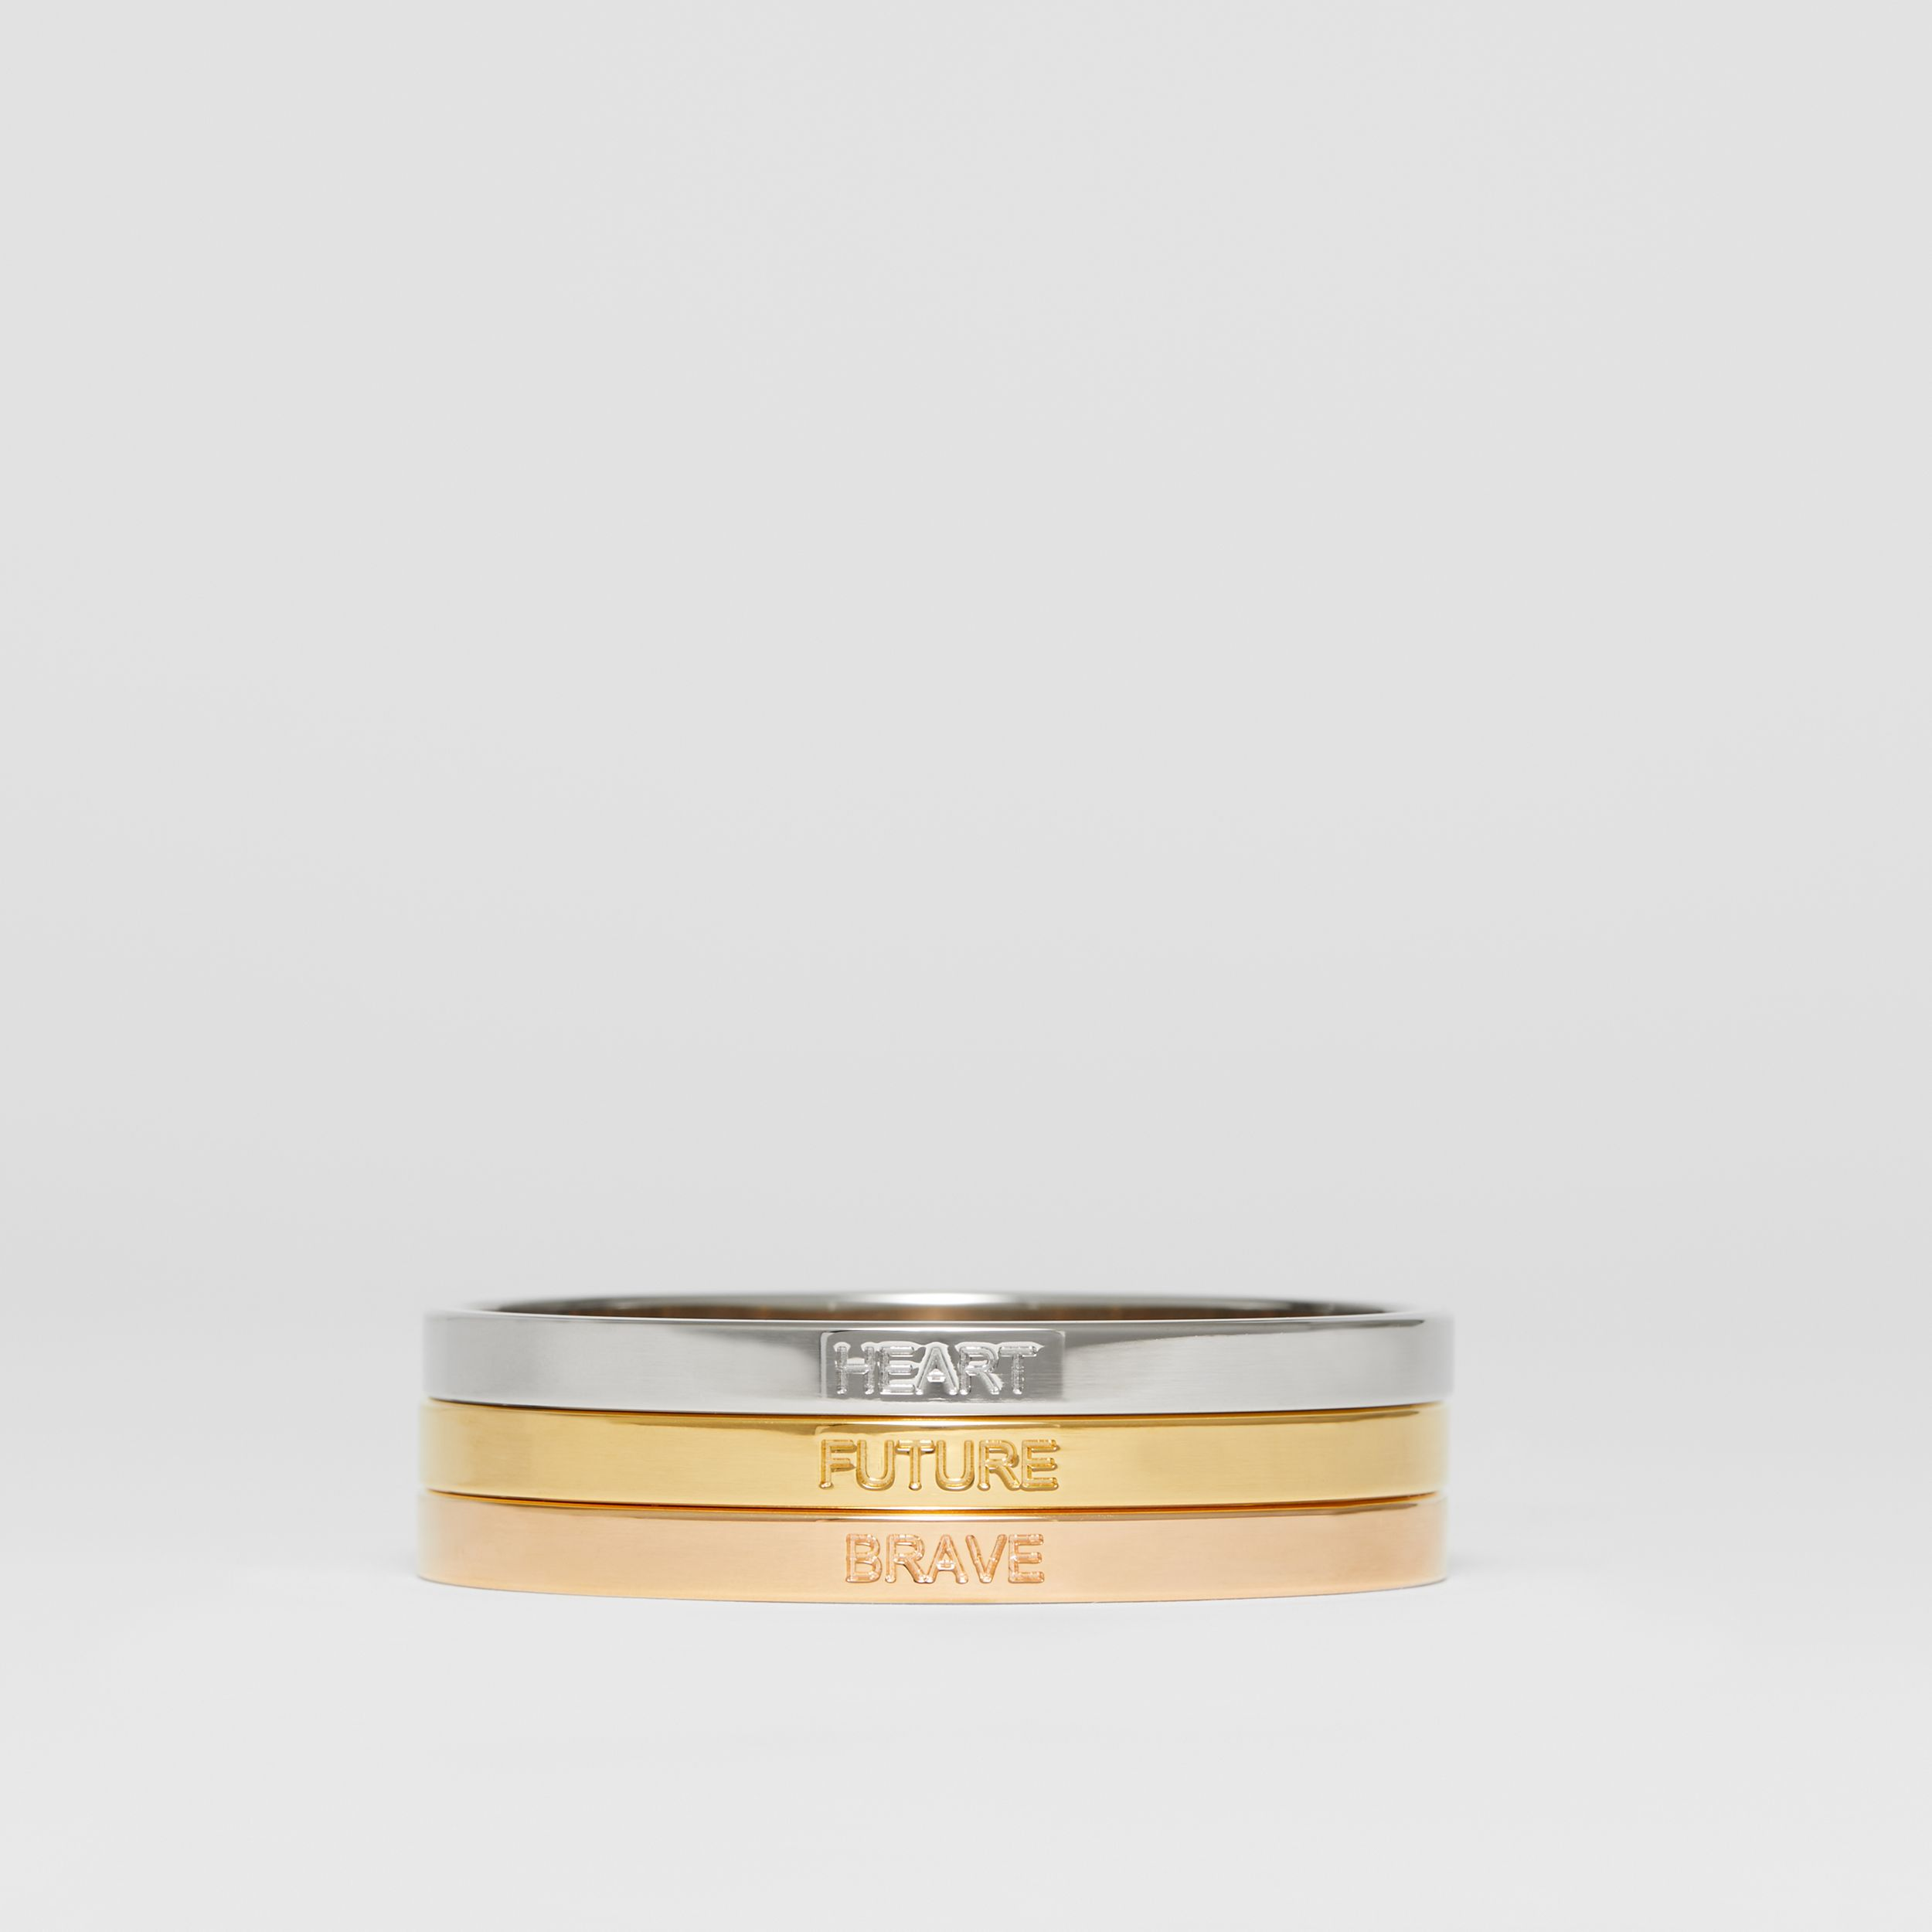 Rose Gold, Palladium and Gold-plated Bangles in Light Gold/rose Gold/palladium - Women | Burberry - 1